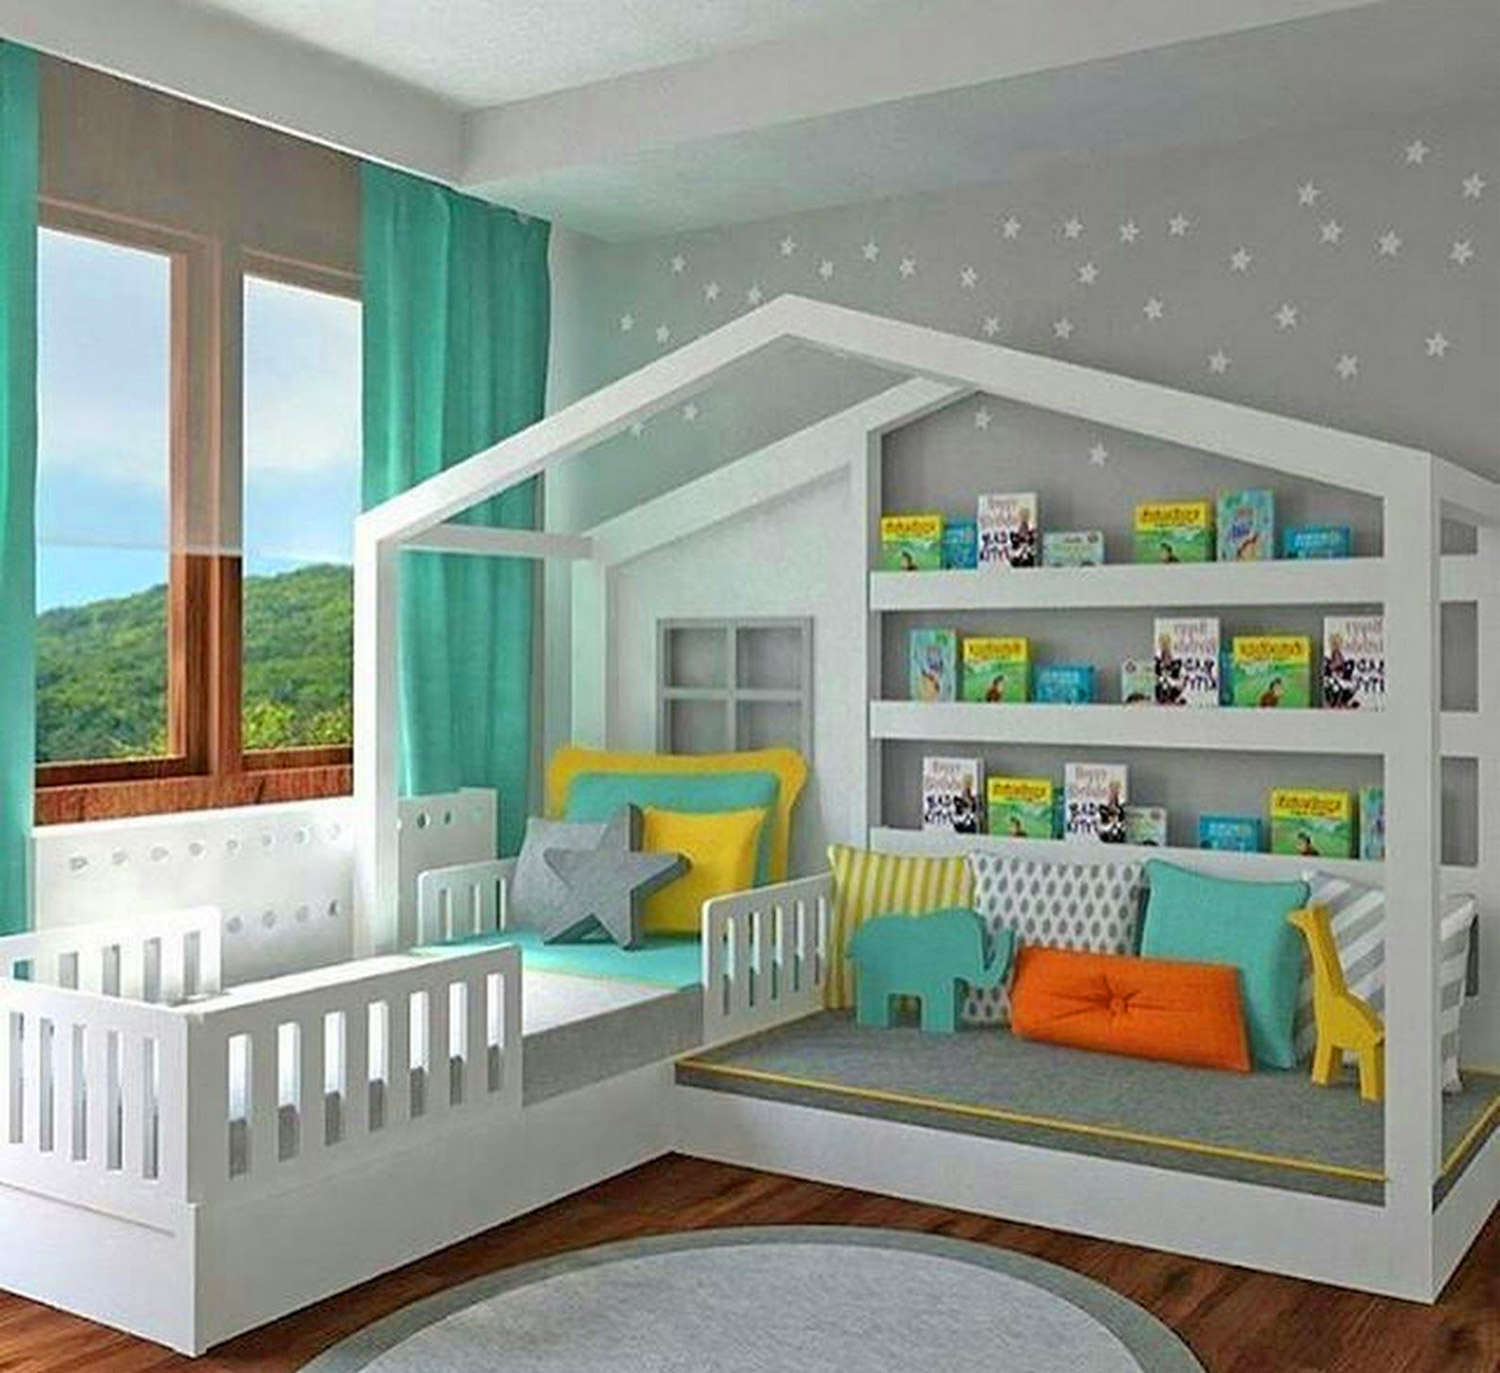 This Kids Montessori Bed Has A Bed And Reading Nook In One